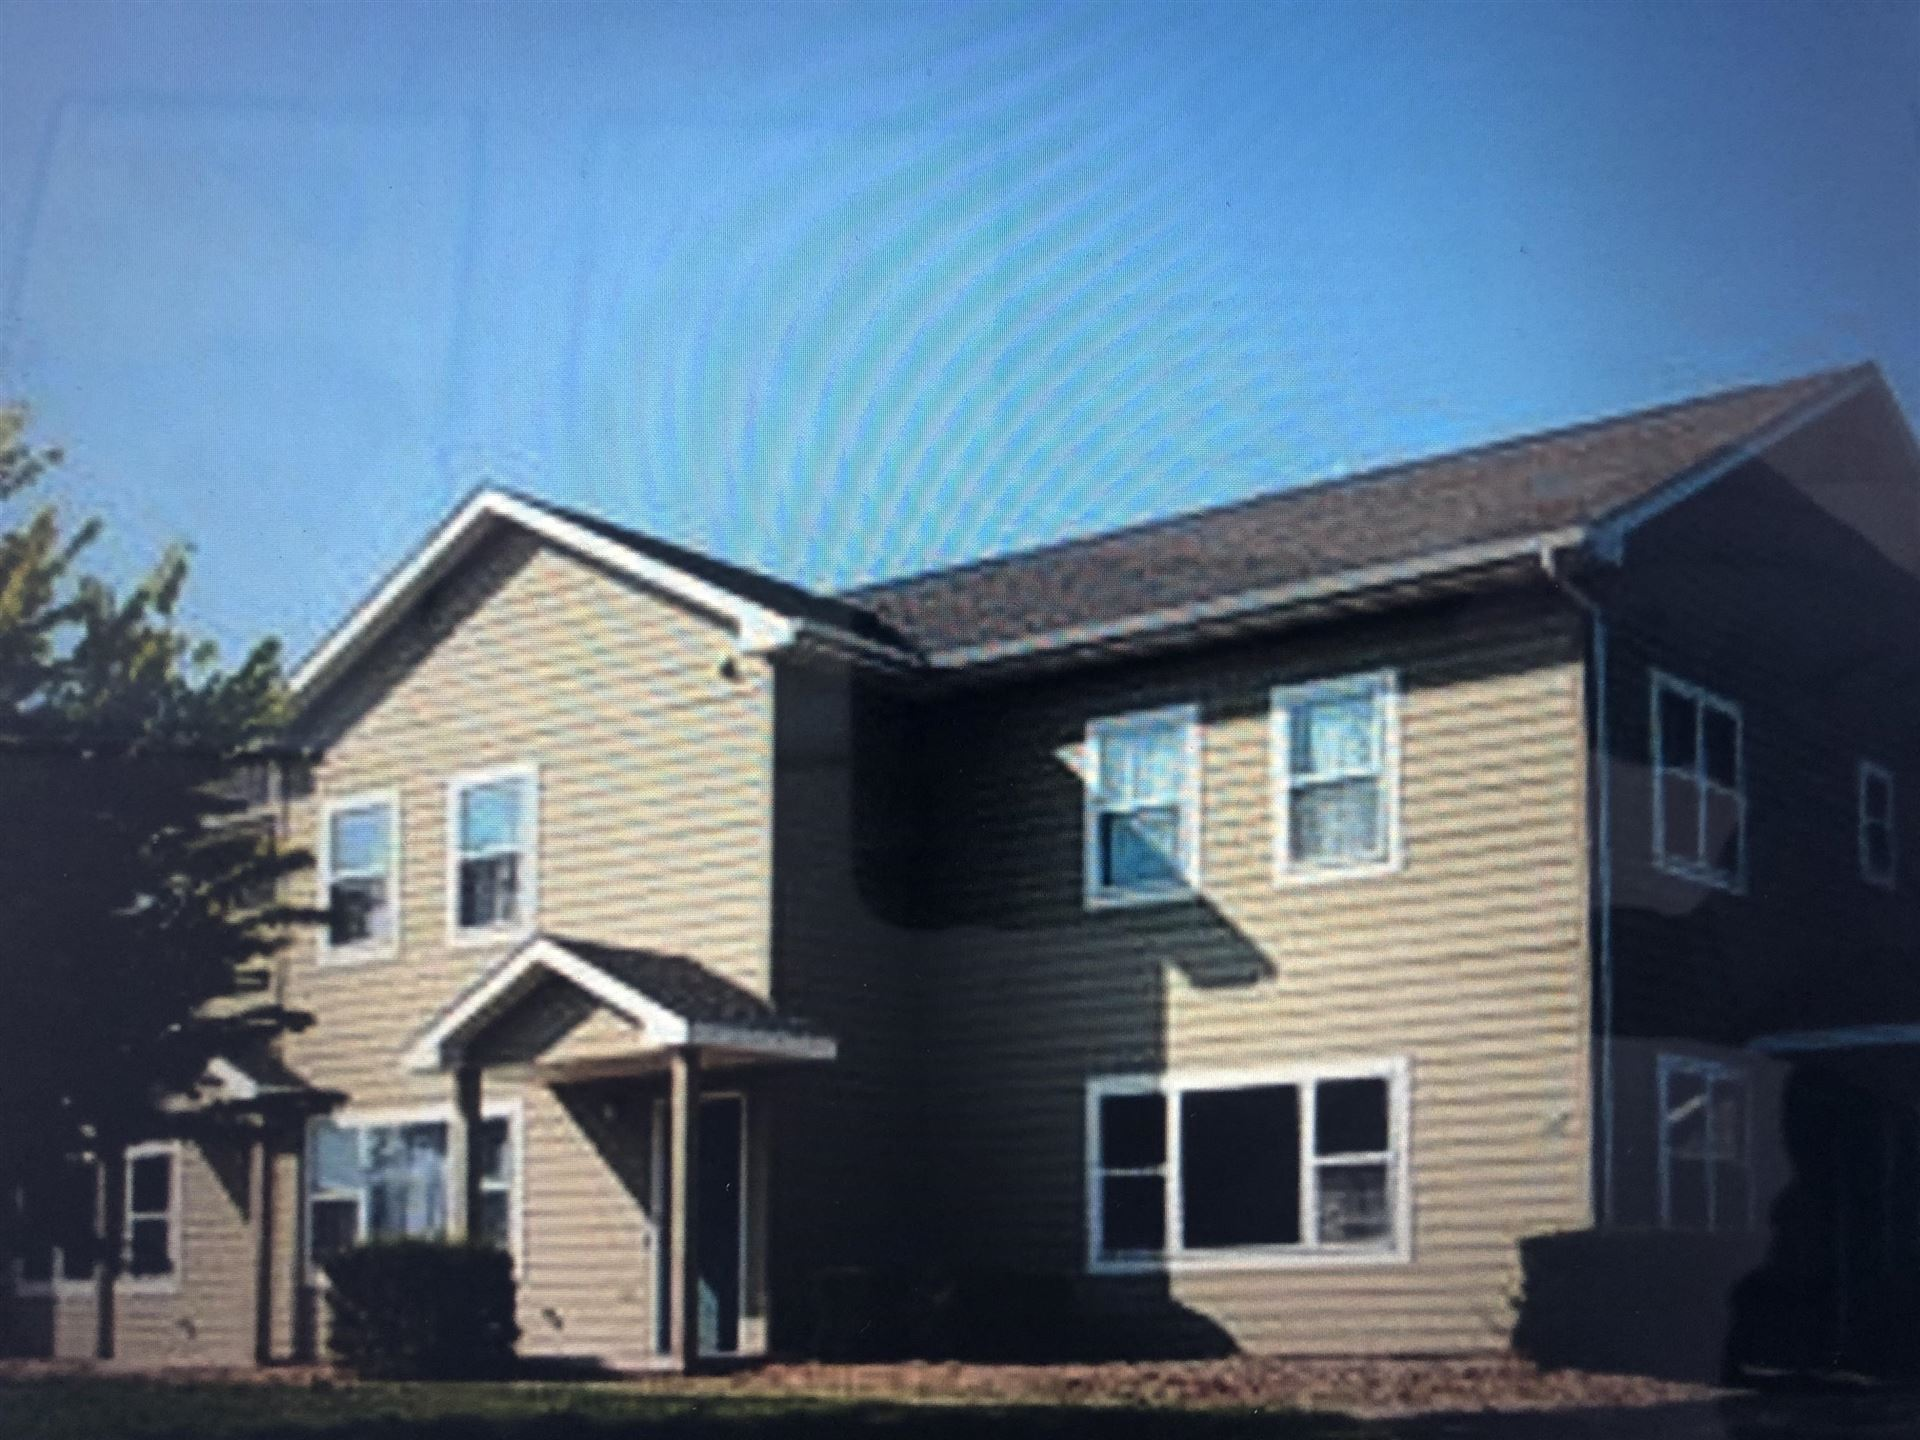 549 S Gault St, Whitewater, WI 53190 - #: 1676920